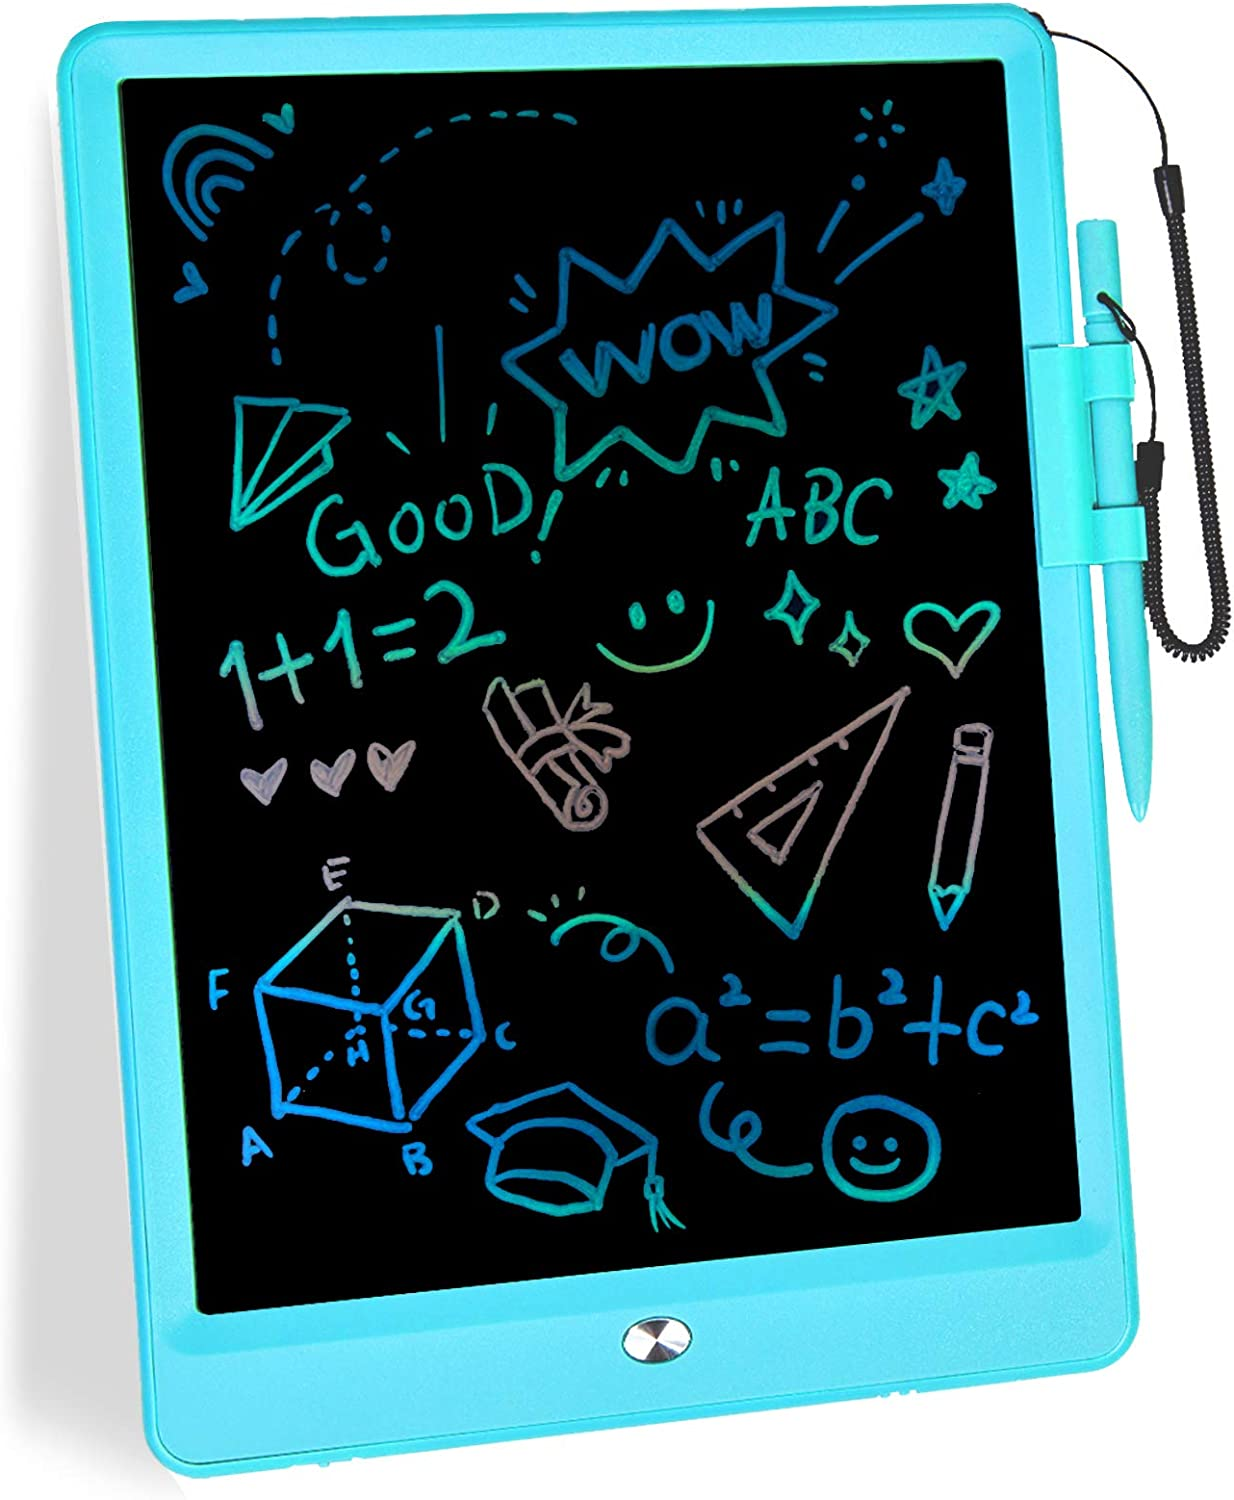 Mloong 10 Inch LCD Writing Tablet $11.99 Coupon